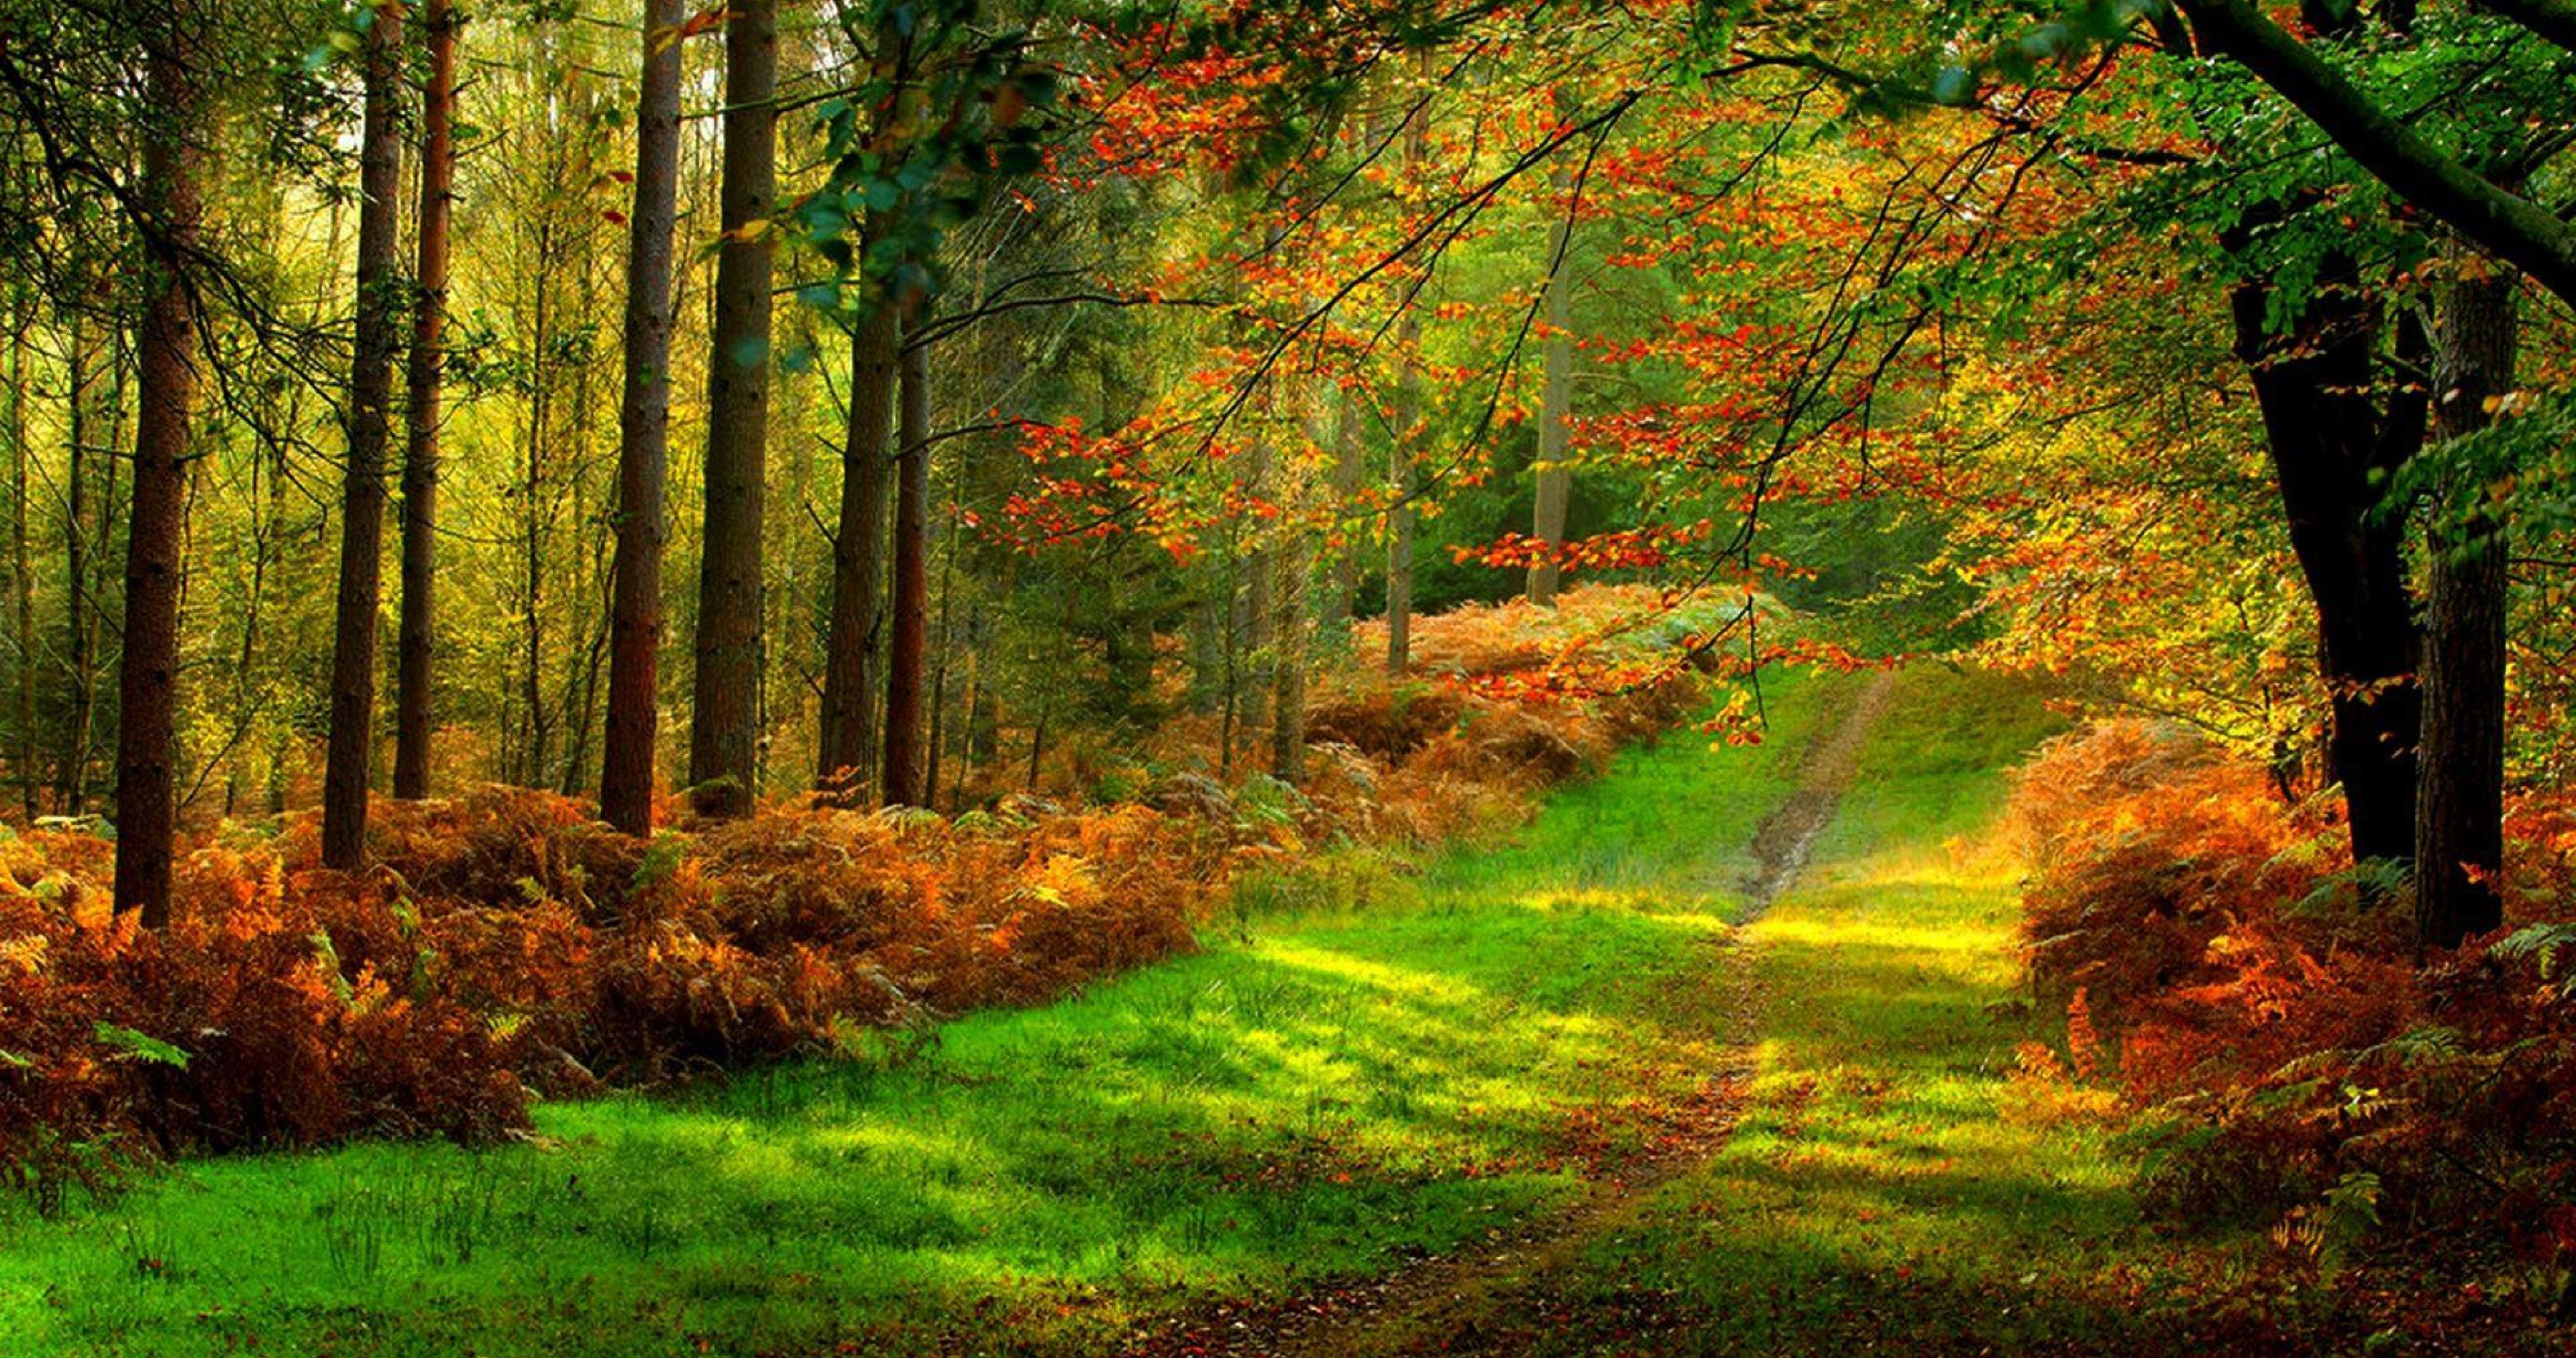 Forest Road Colorful 4k Ultra Hd Wallpaper Forest Road Landscape Wallpaper Nature